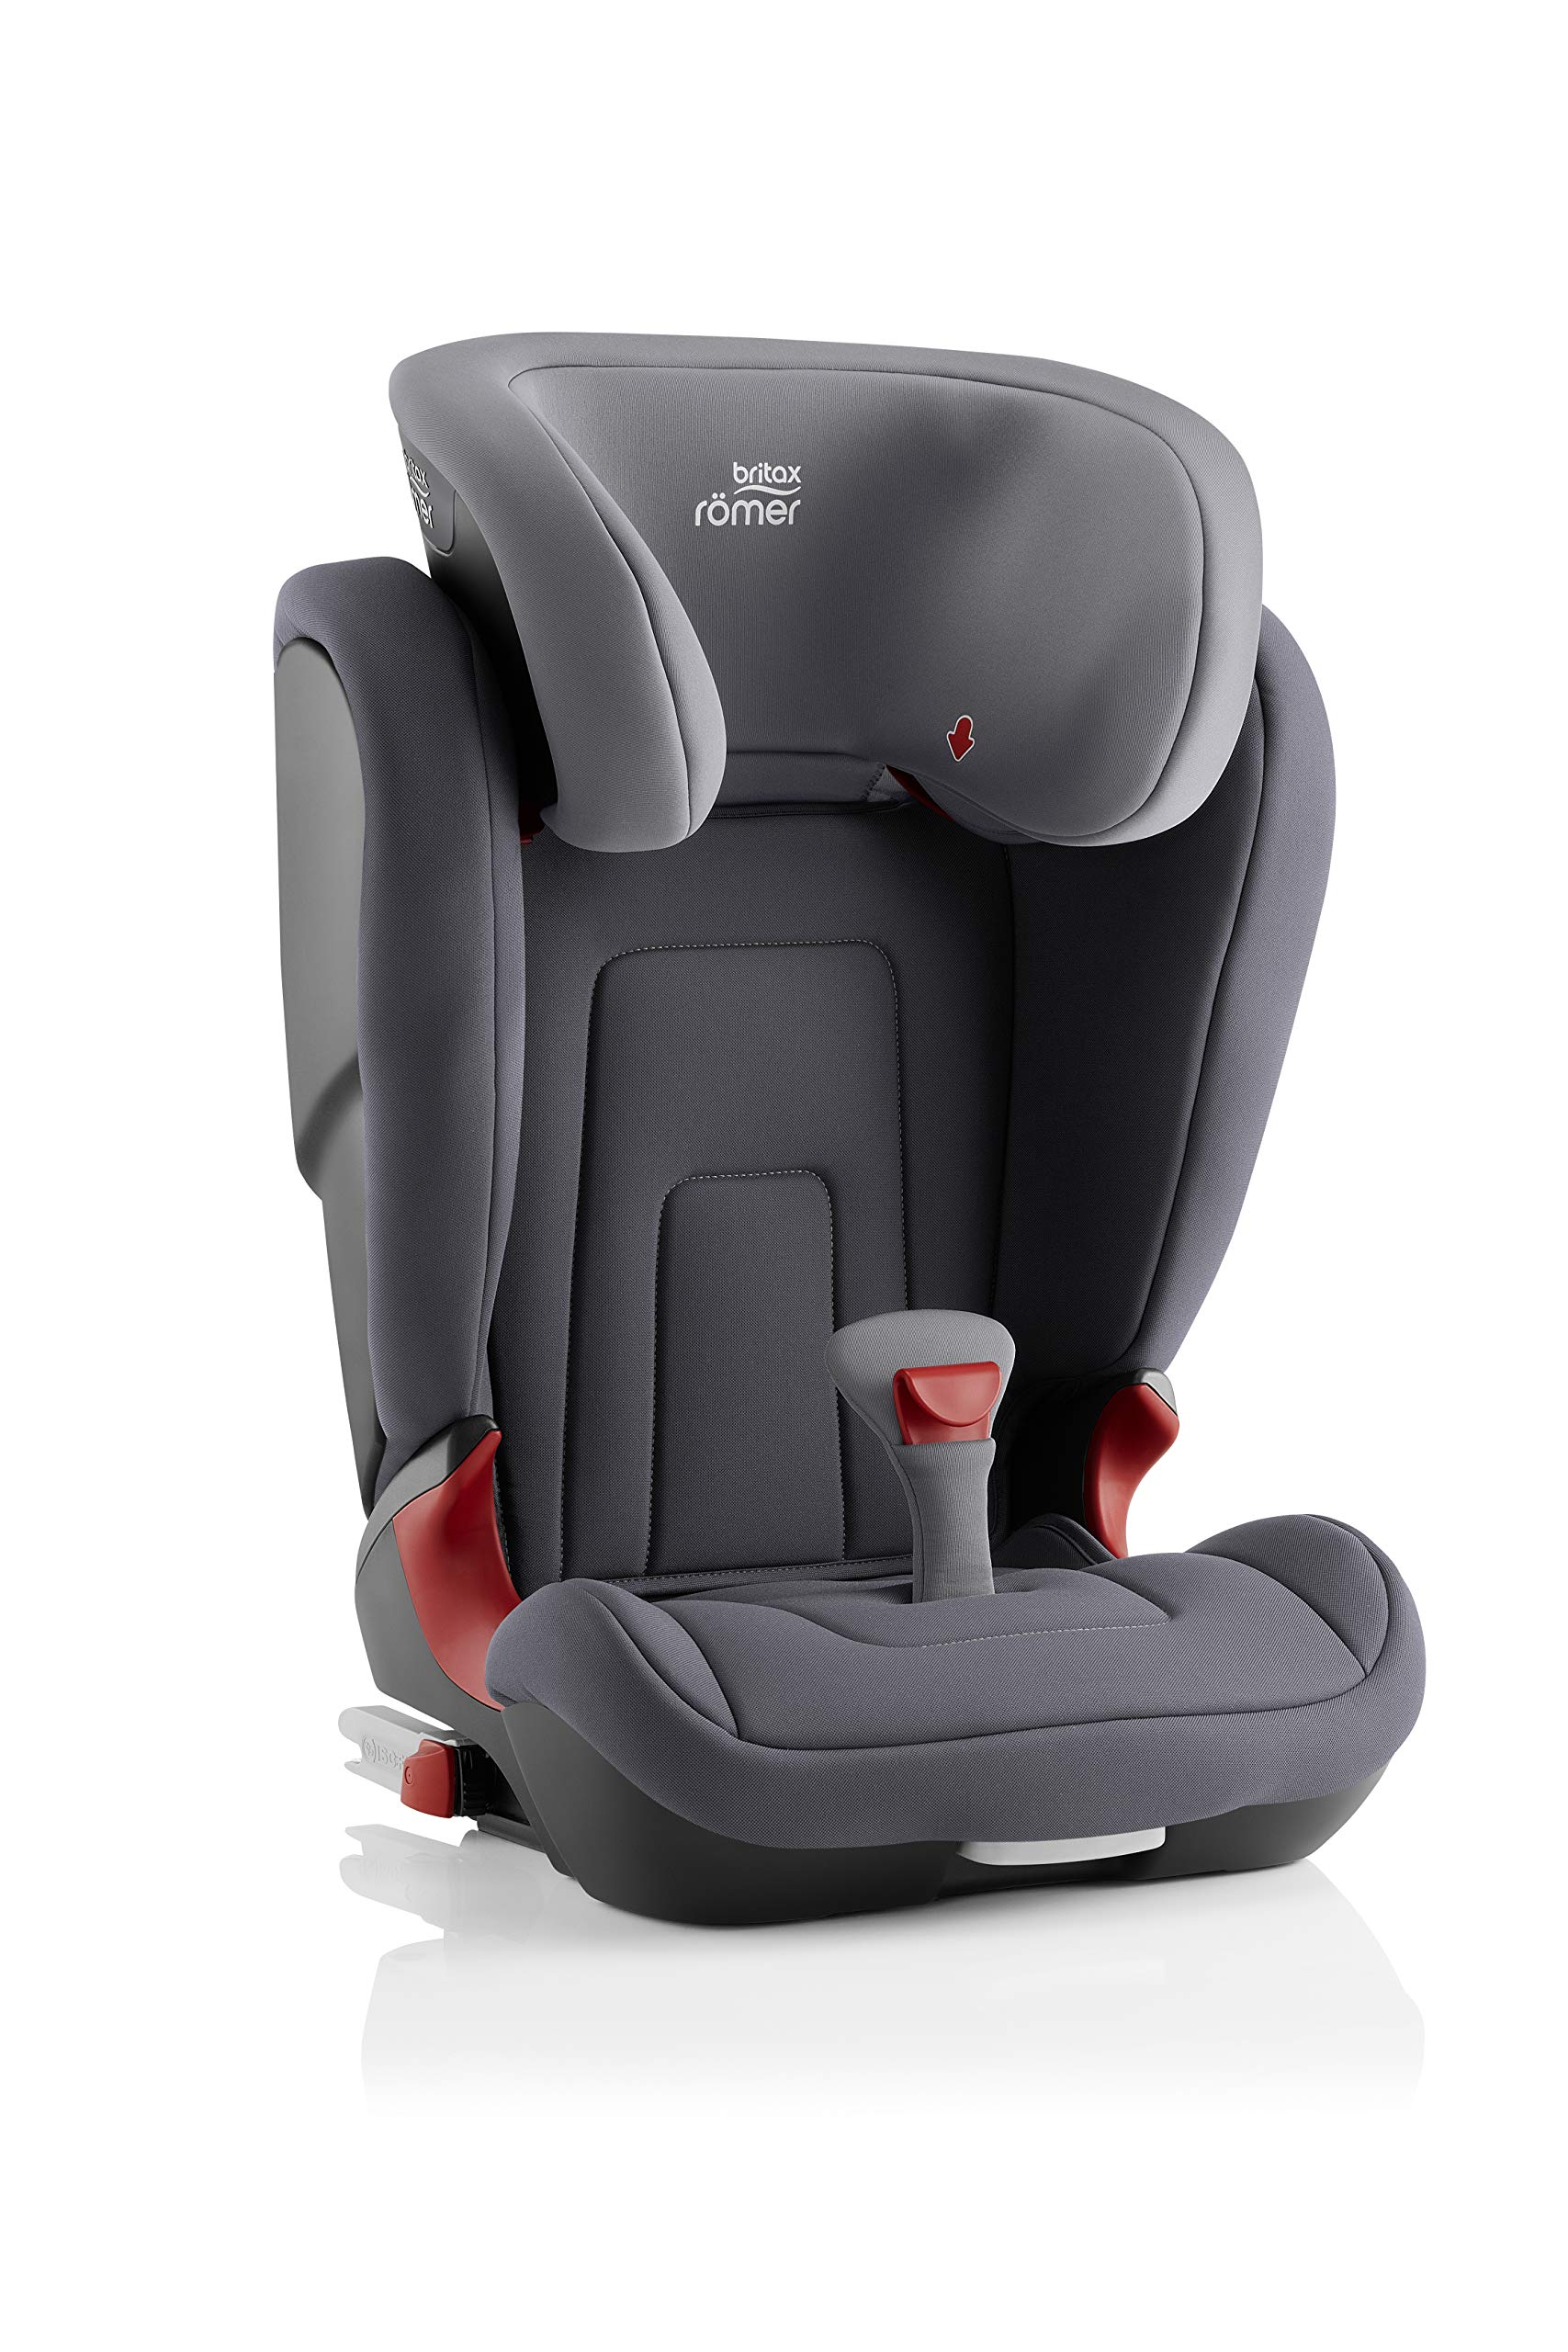 Britax Römer car seat 15-36 kg, KIDFIX 2 R Isofix group 2/3, Storm Grey Britax Römer Secure guard - helps to protect your child's delicate abdominal area by adding an extra - a 4th - contact point to the 3-point seat belt. High back booster - protects your child in 3 ways: provides head to hip protection; belt guides provide correct positioning of the seat belt and the padded headrest provides safety and comfort. Easy adjustable v-shaped backrest - designed to give optimum support to your growing child, the v-shaped backrest provides more space for their back and shoulders. 3